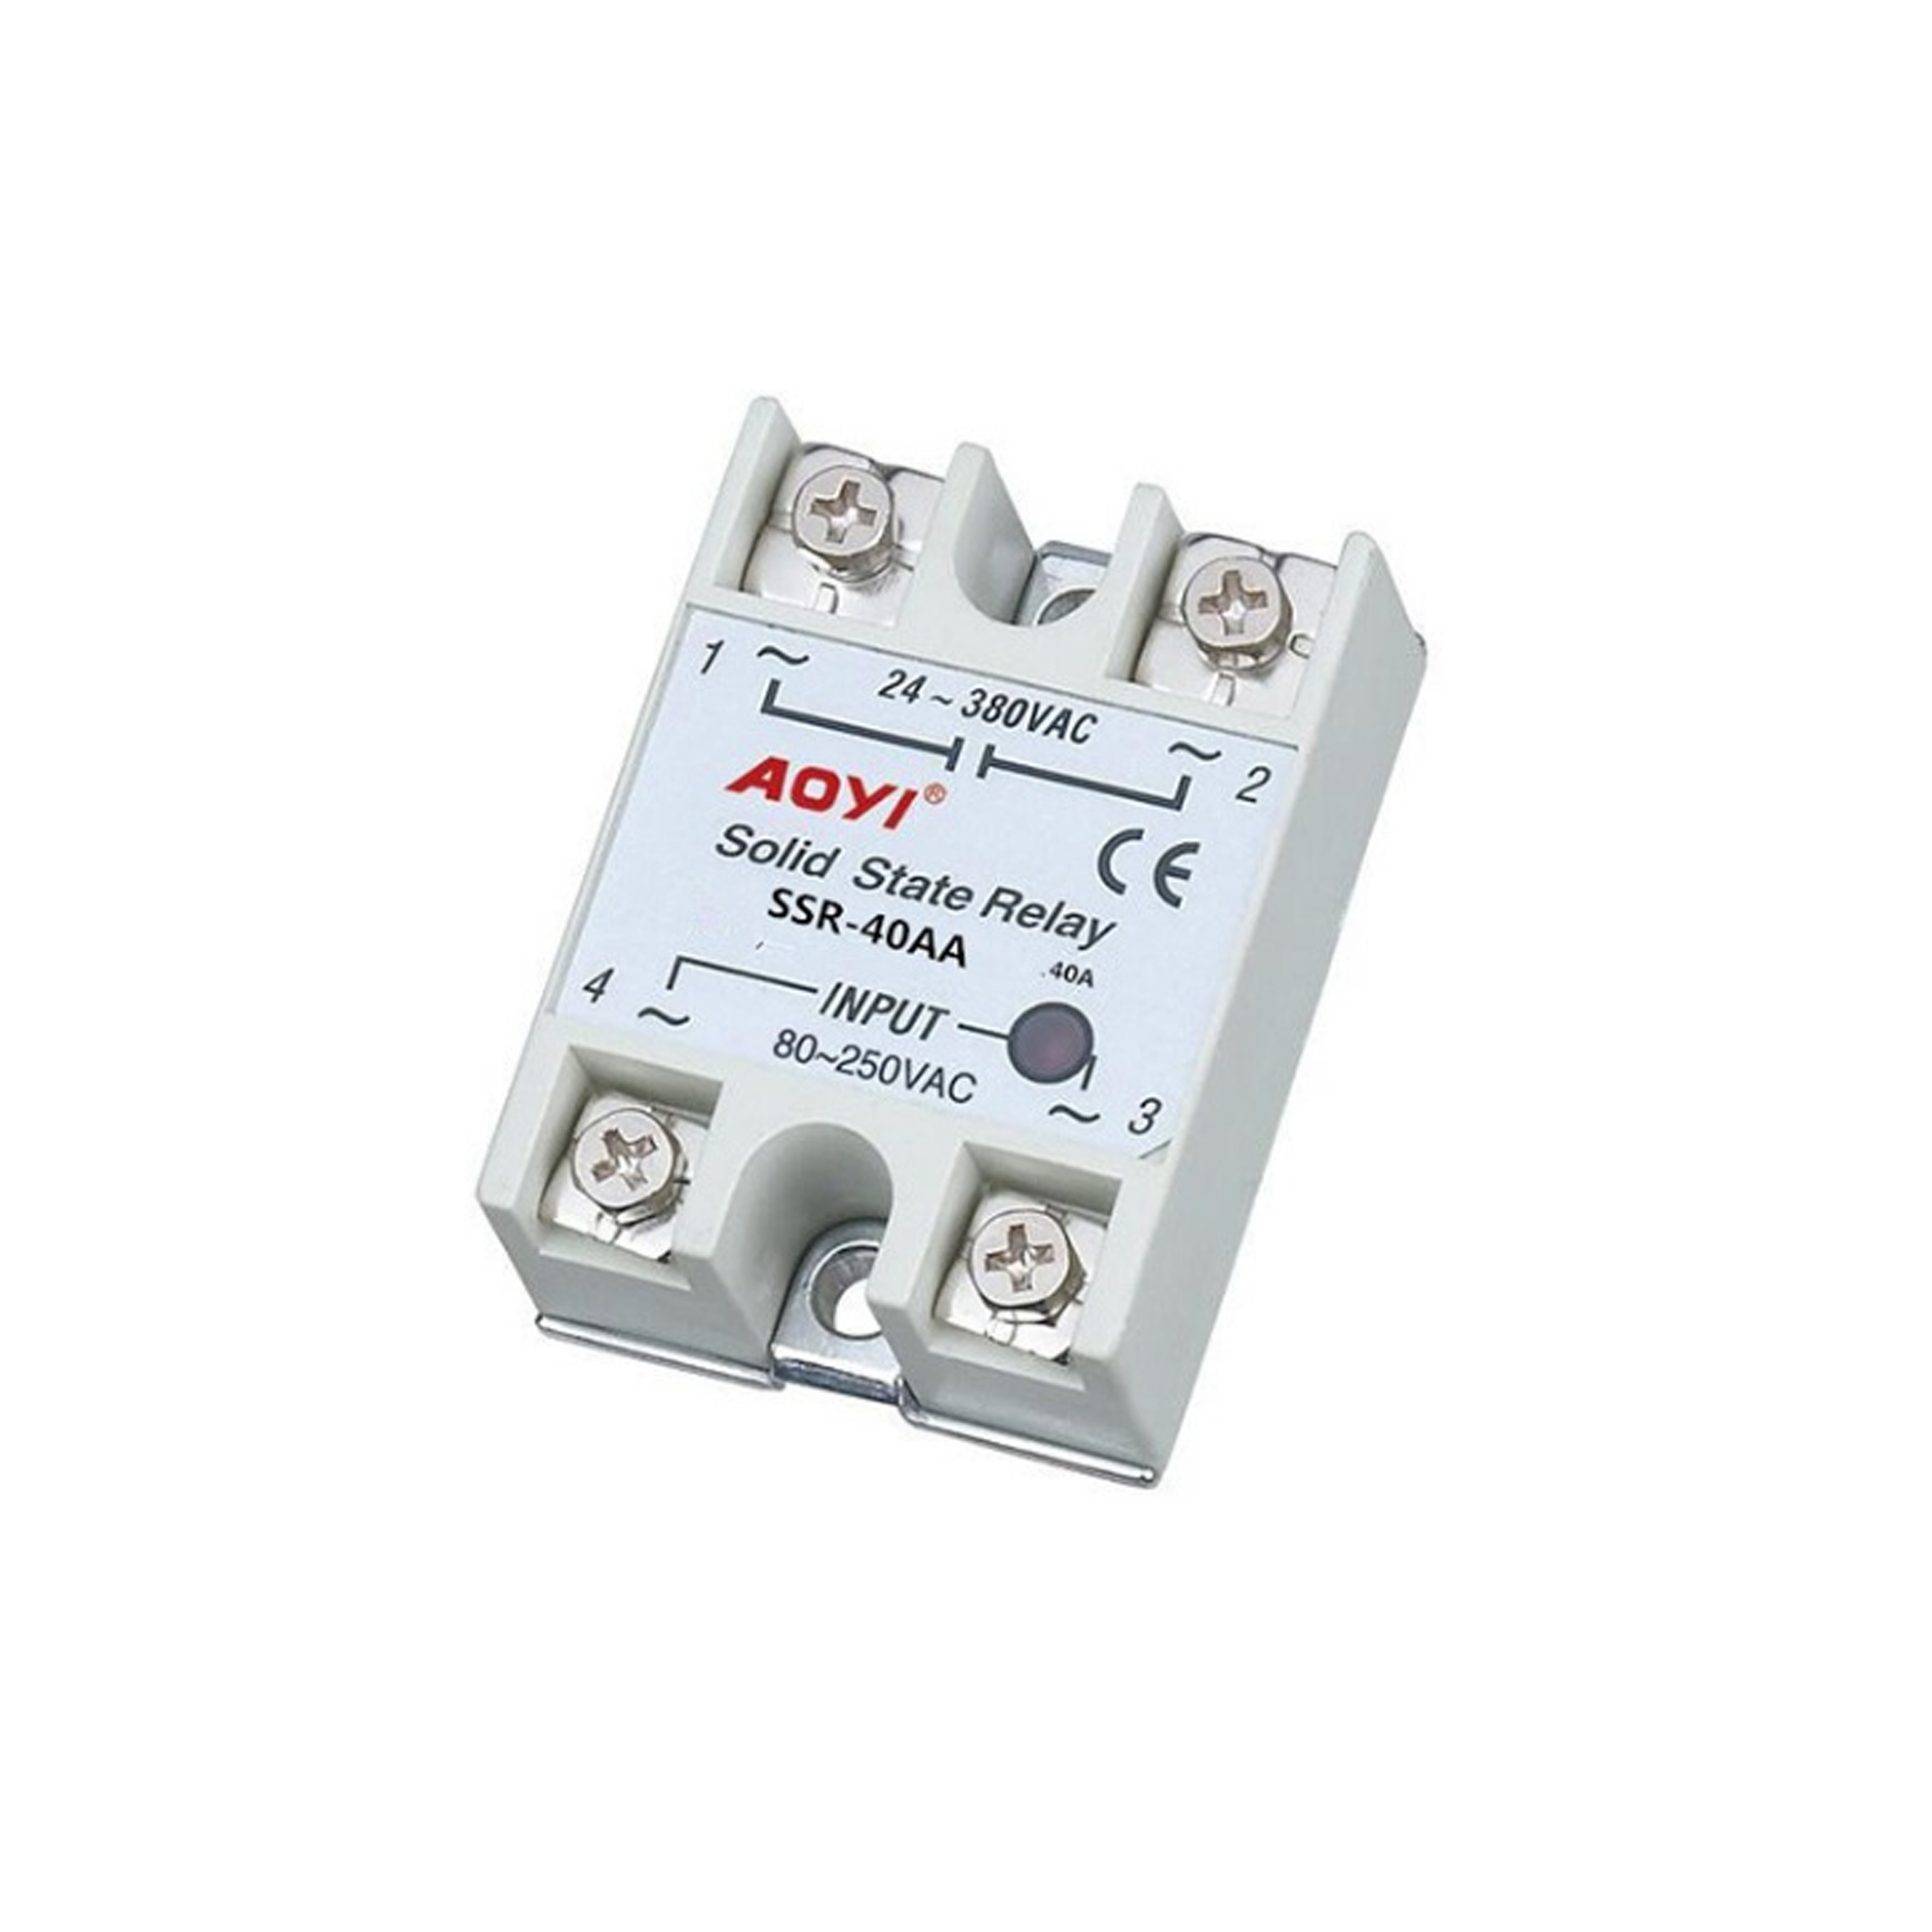 220v Ssr Solid State Relay 10a 25a 40a 60a 75a 90a - Buy 380vac Ac Ac Solid  State Relay,Solid State Variable Relay,24~380vac Single Phase Dc Solid